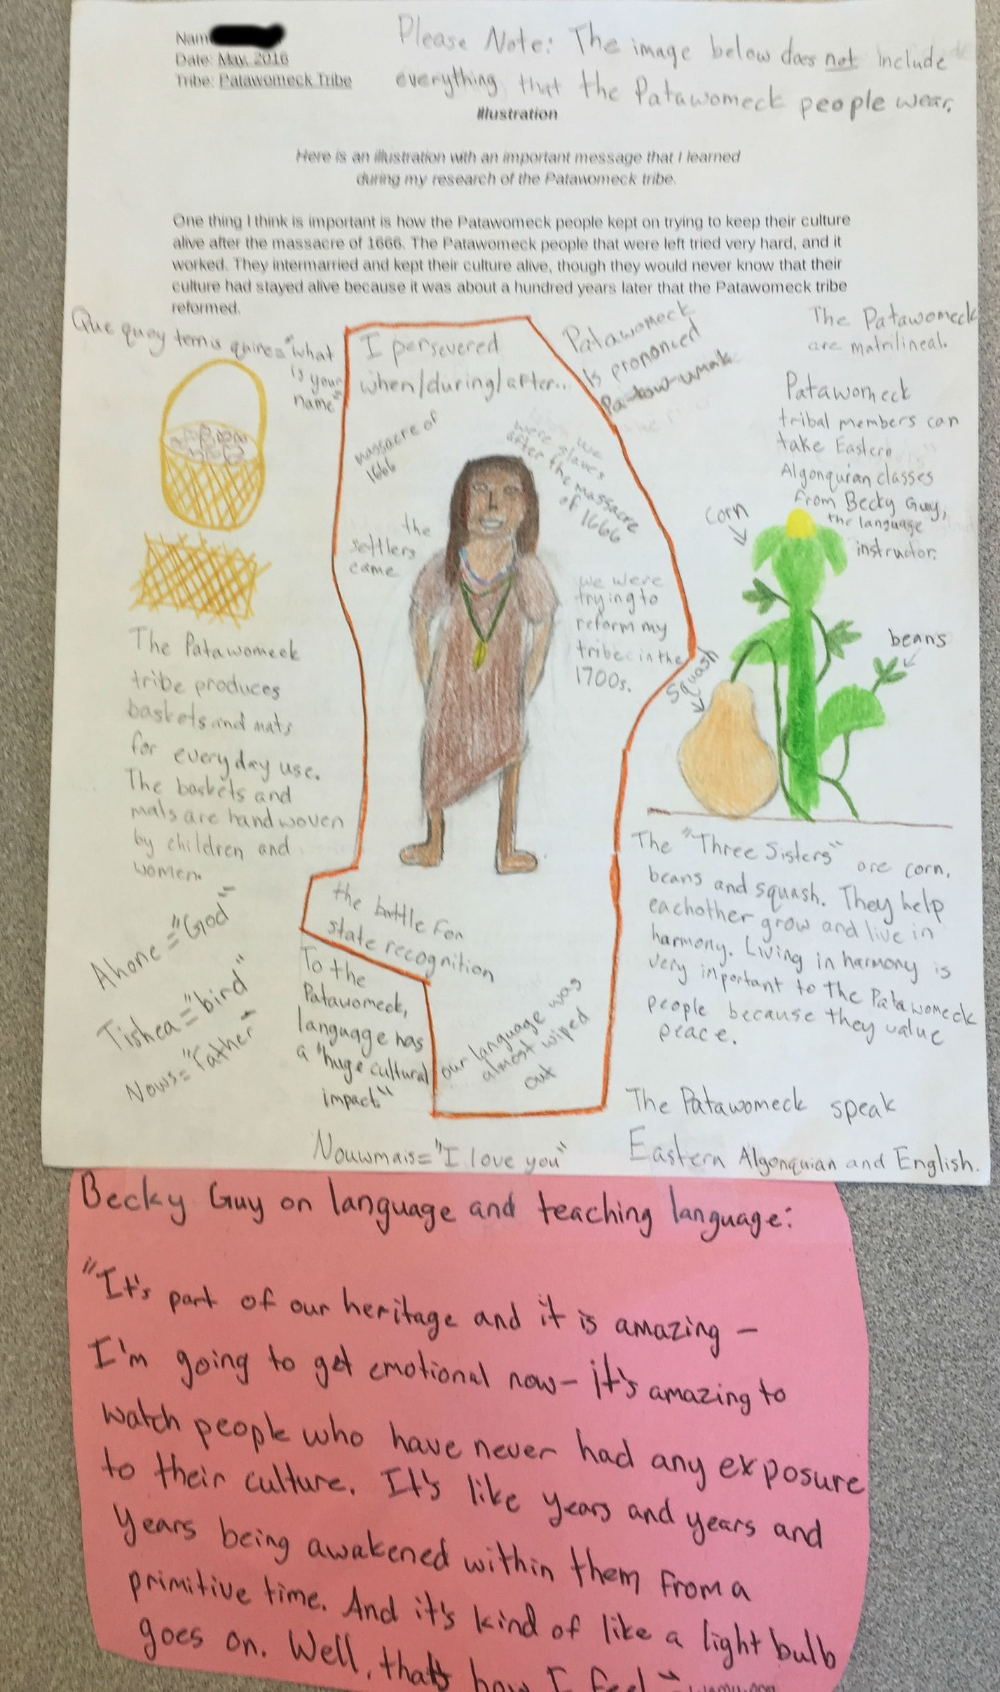 One of our students who studied the Patawomeck Tribe created this illustration to showcase some of the amazing things about the tribe.